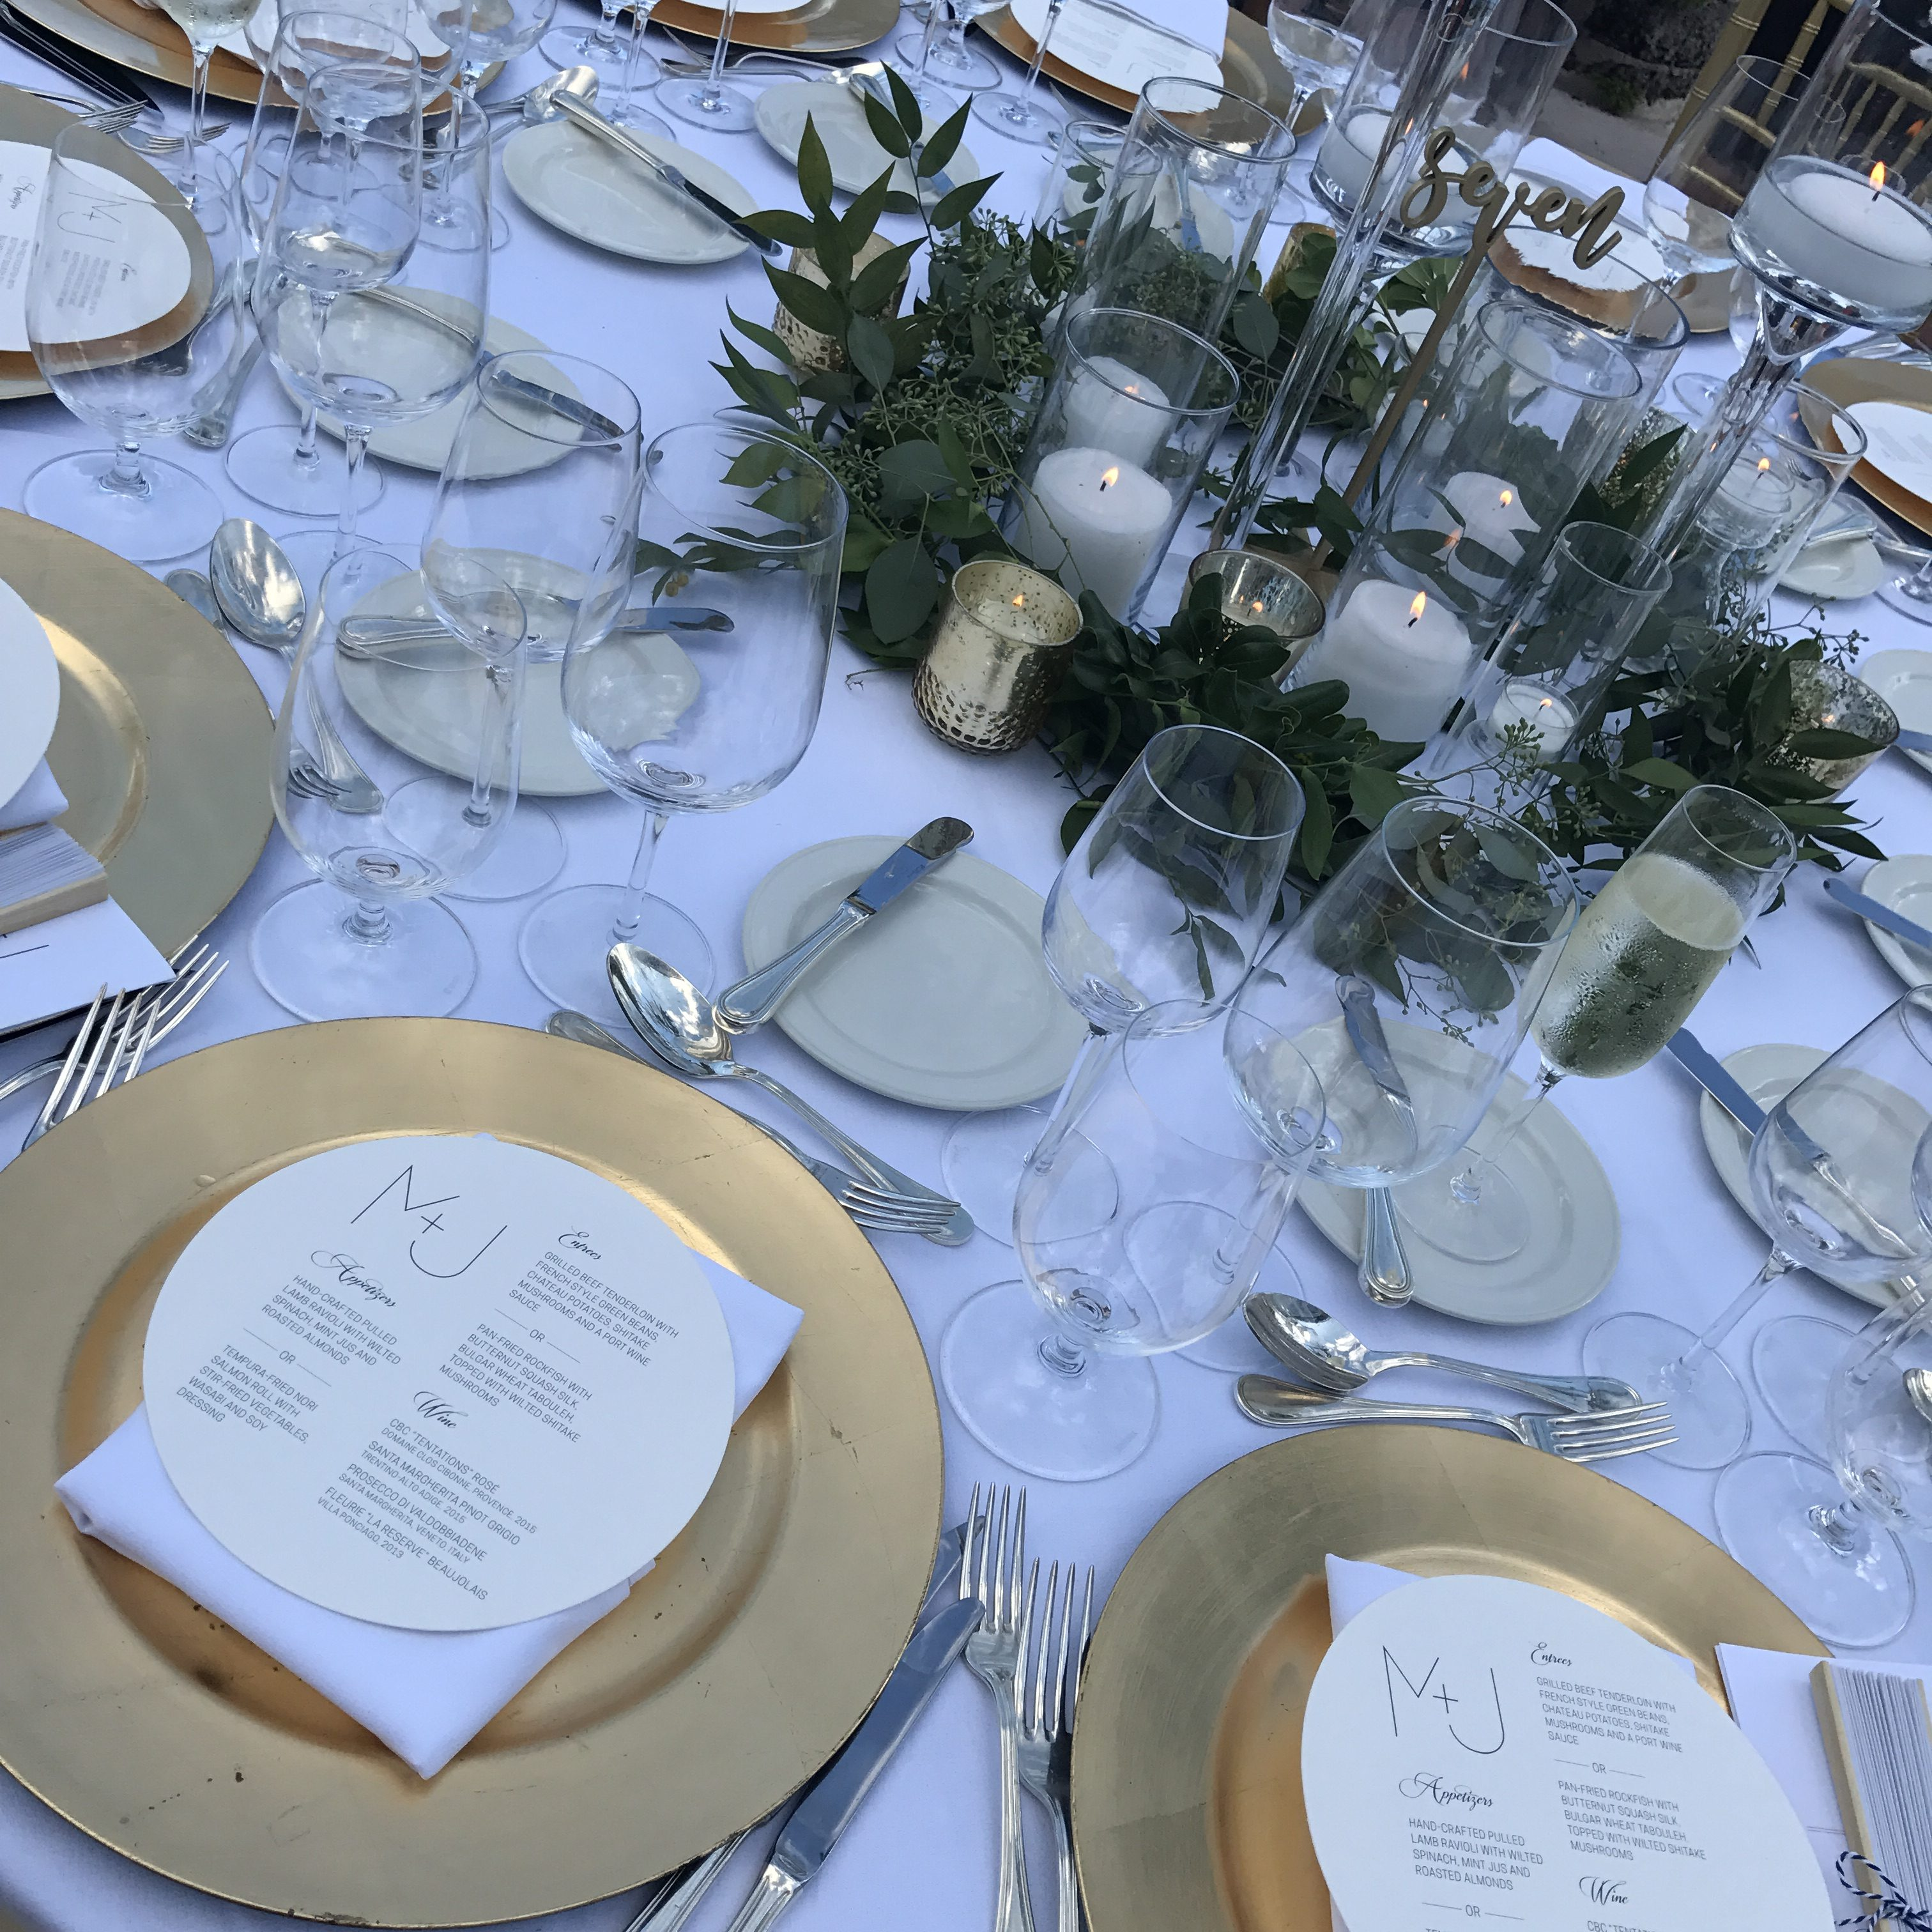 Close up detail of the wedding reception tables with printed menus.